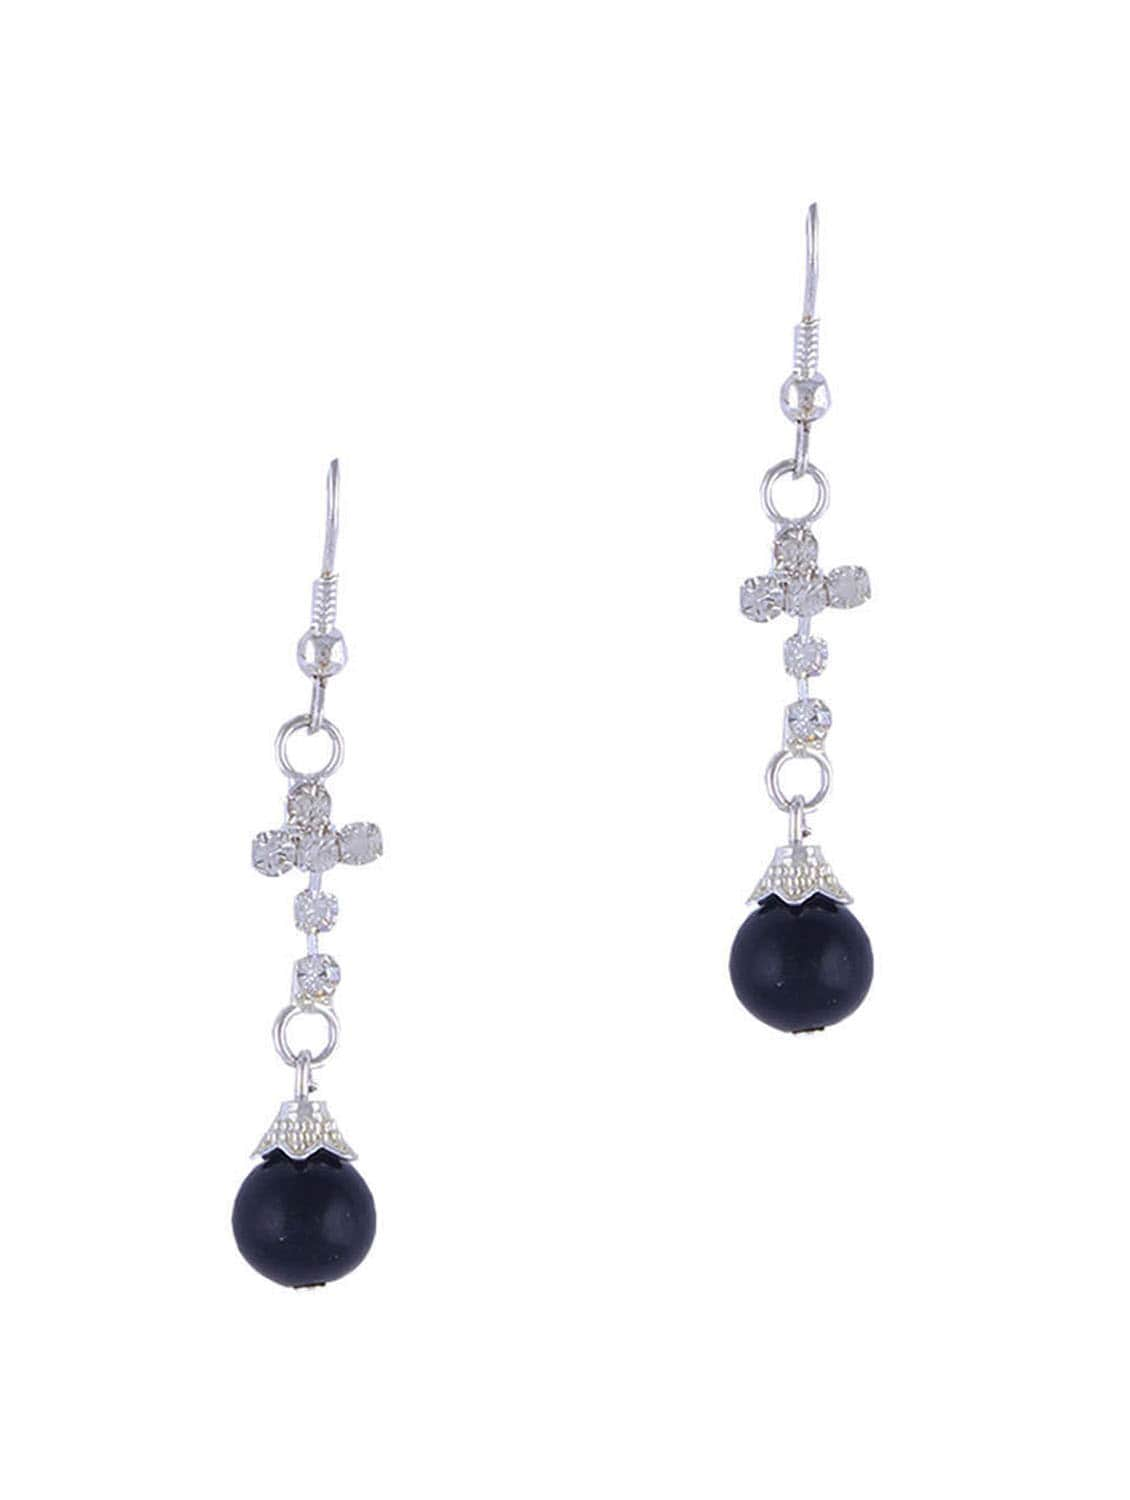 SILVER LONG EARRINGS WITH BLACK BEADS - THE BLING STUDIO